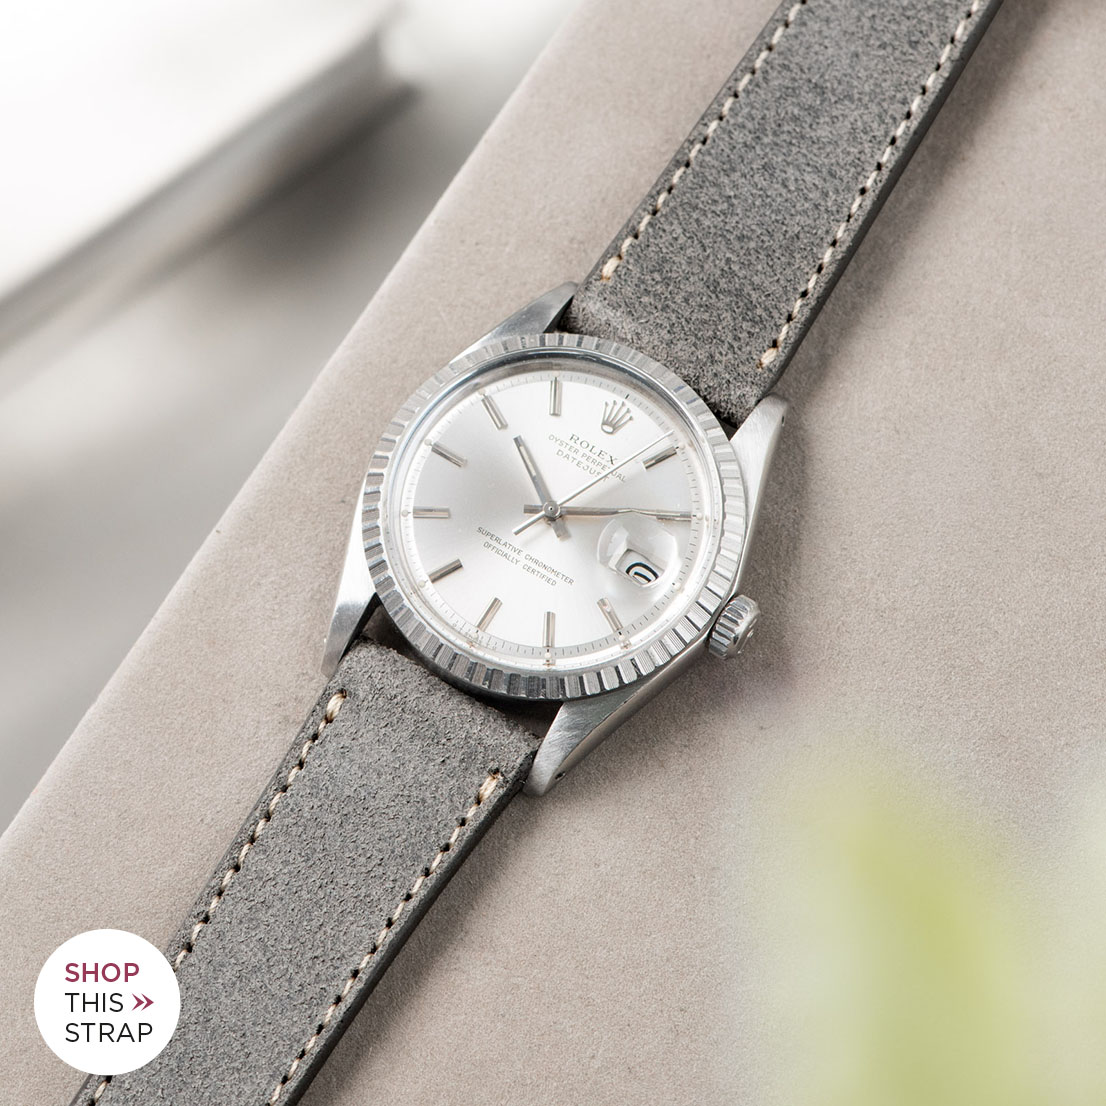 Bulang and sons_Strap Guide_Rolex Datejust Silverdial 1601 1603 1600 1630_REFINED RUGGED GREY LEATHER WATCH STRAP